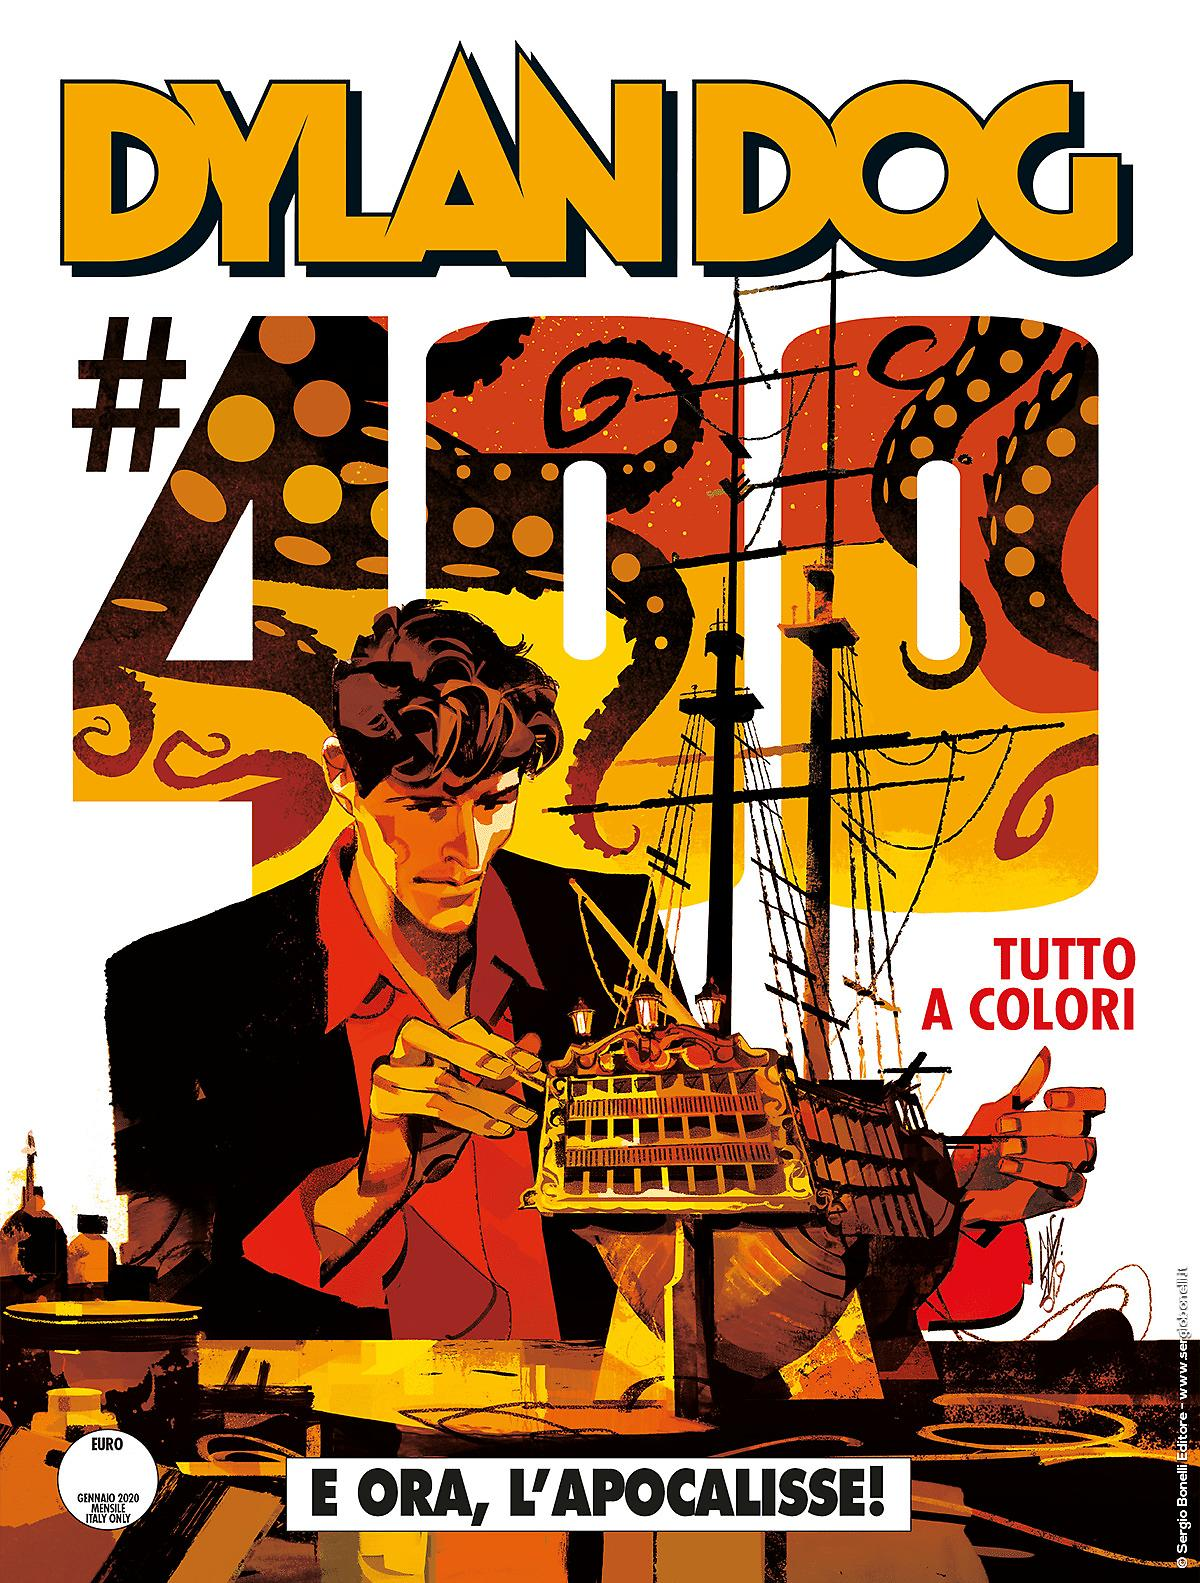 1575388029755.jpg--dylan dog  400 cover c   illustrata da gigi cavenago